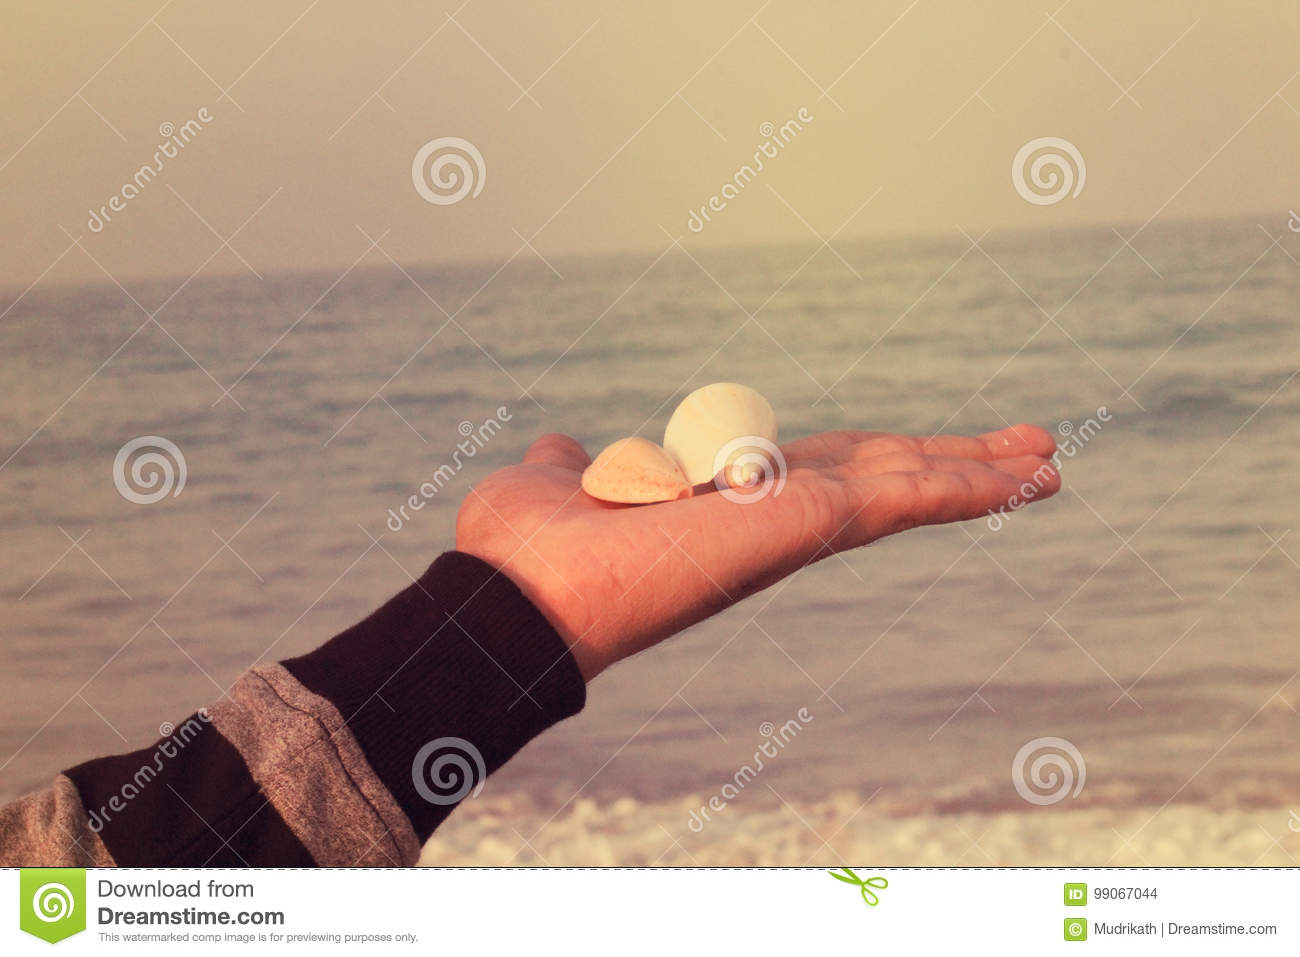 Man holding SeaShells in hand, beach background.